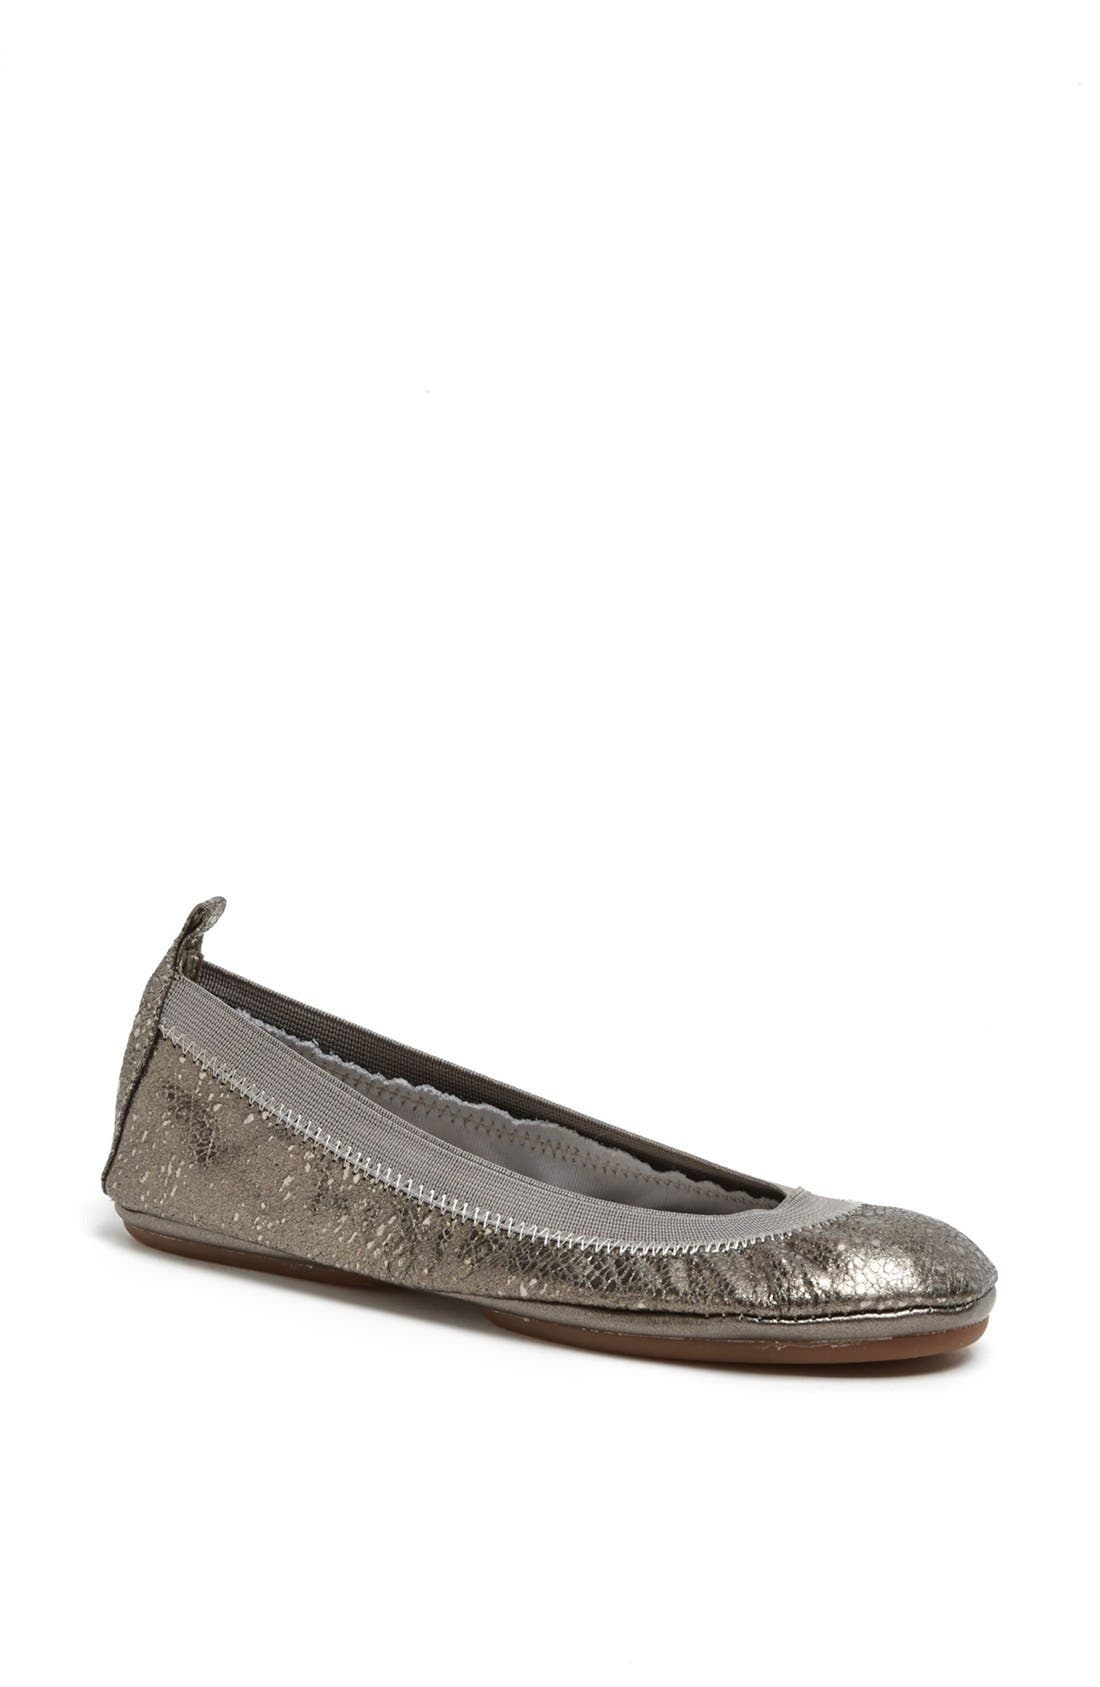 Alternate Image 1 Selected - Yosi Samra Metallic Foldable Ballet Flat